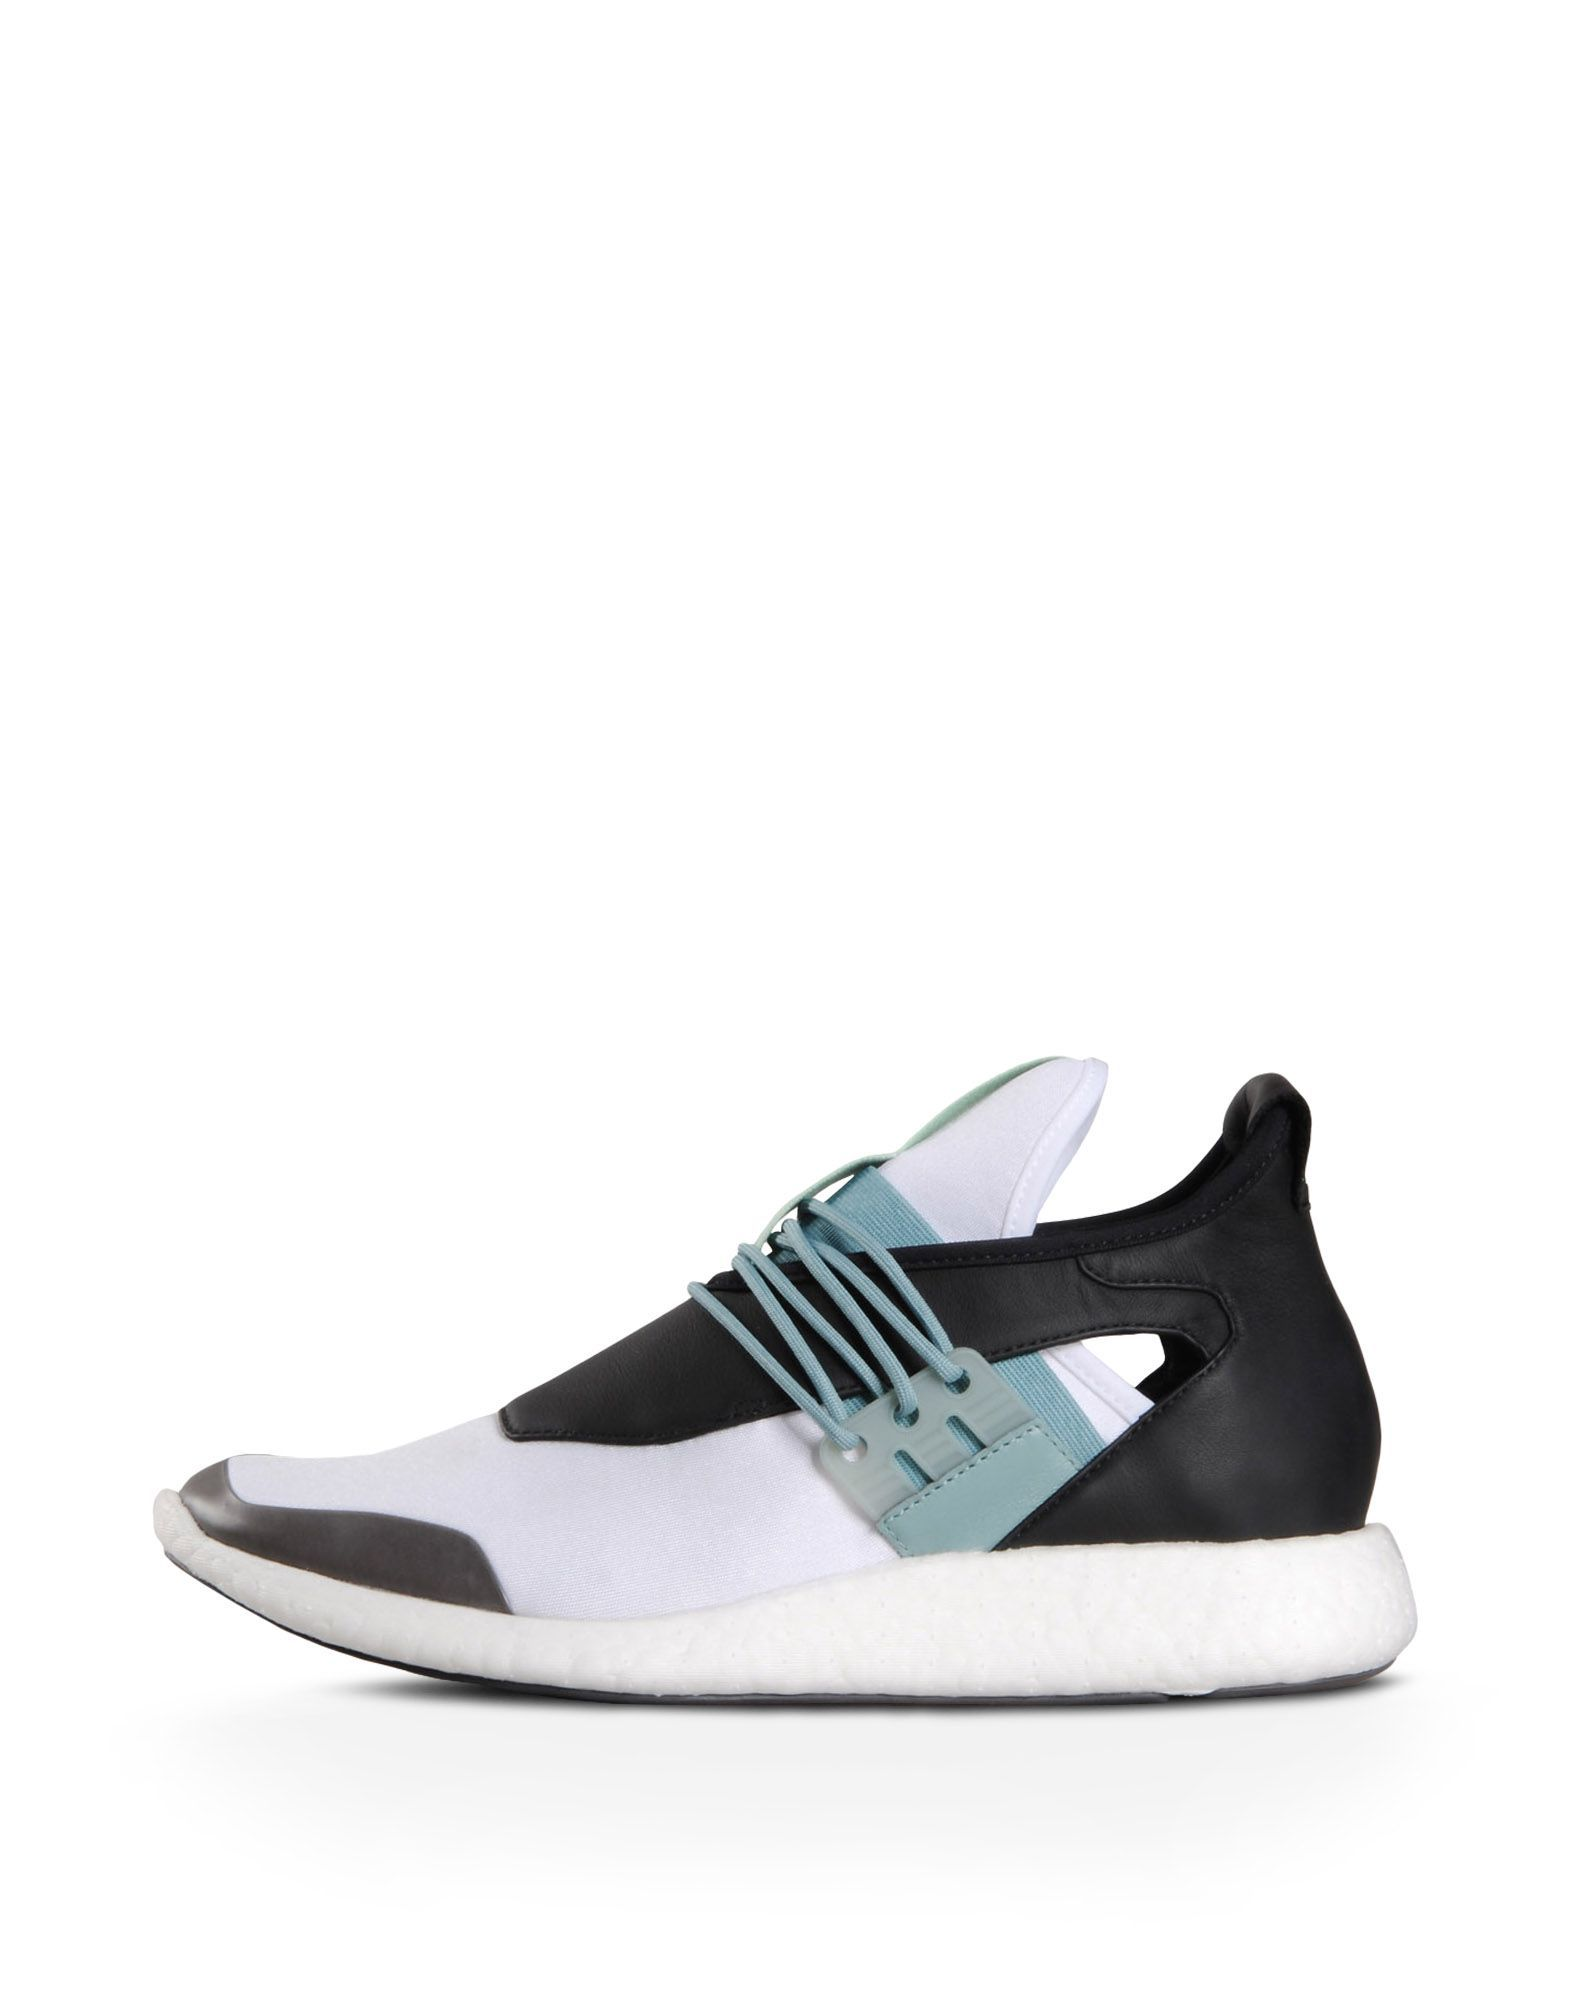 Check out the Y 3 ELLE RUN Sneakers for Women and order today on the  official Adidas online store.